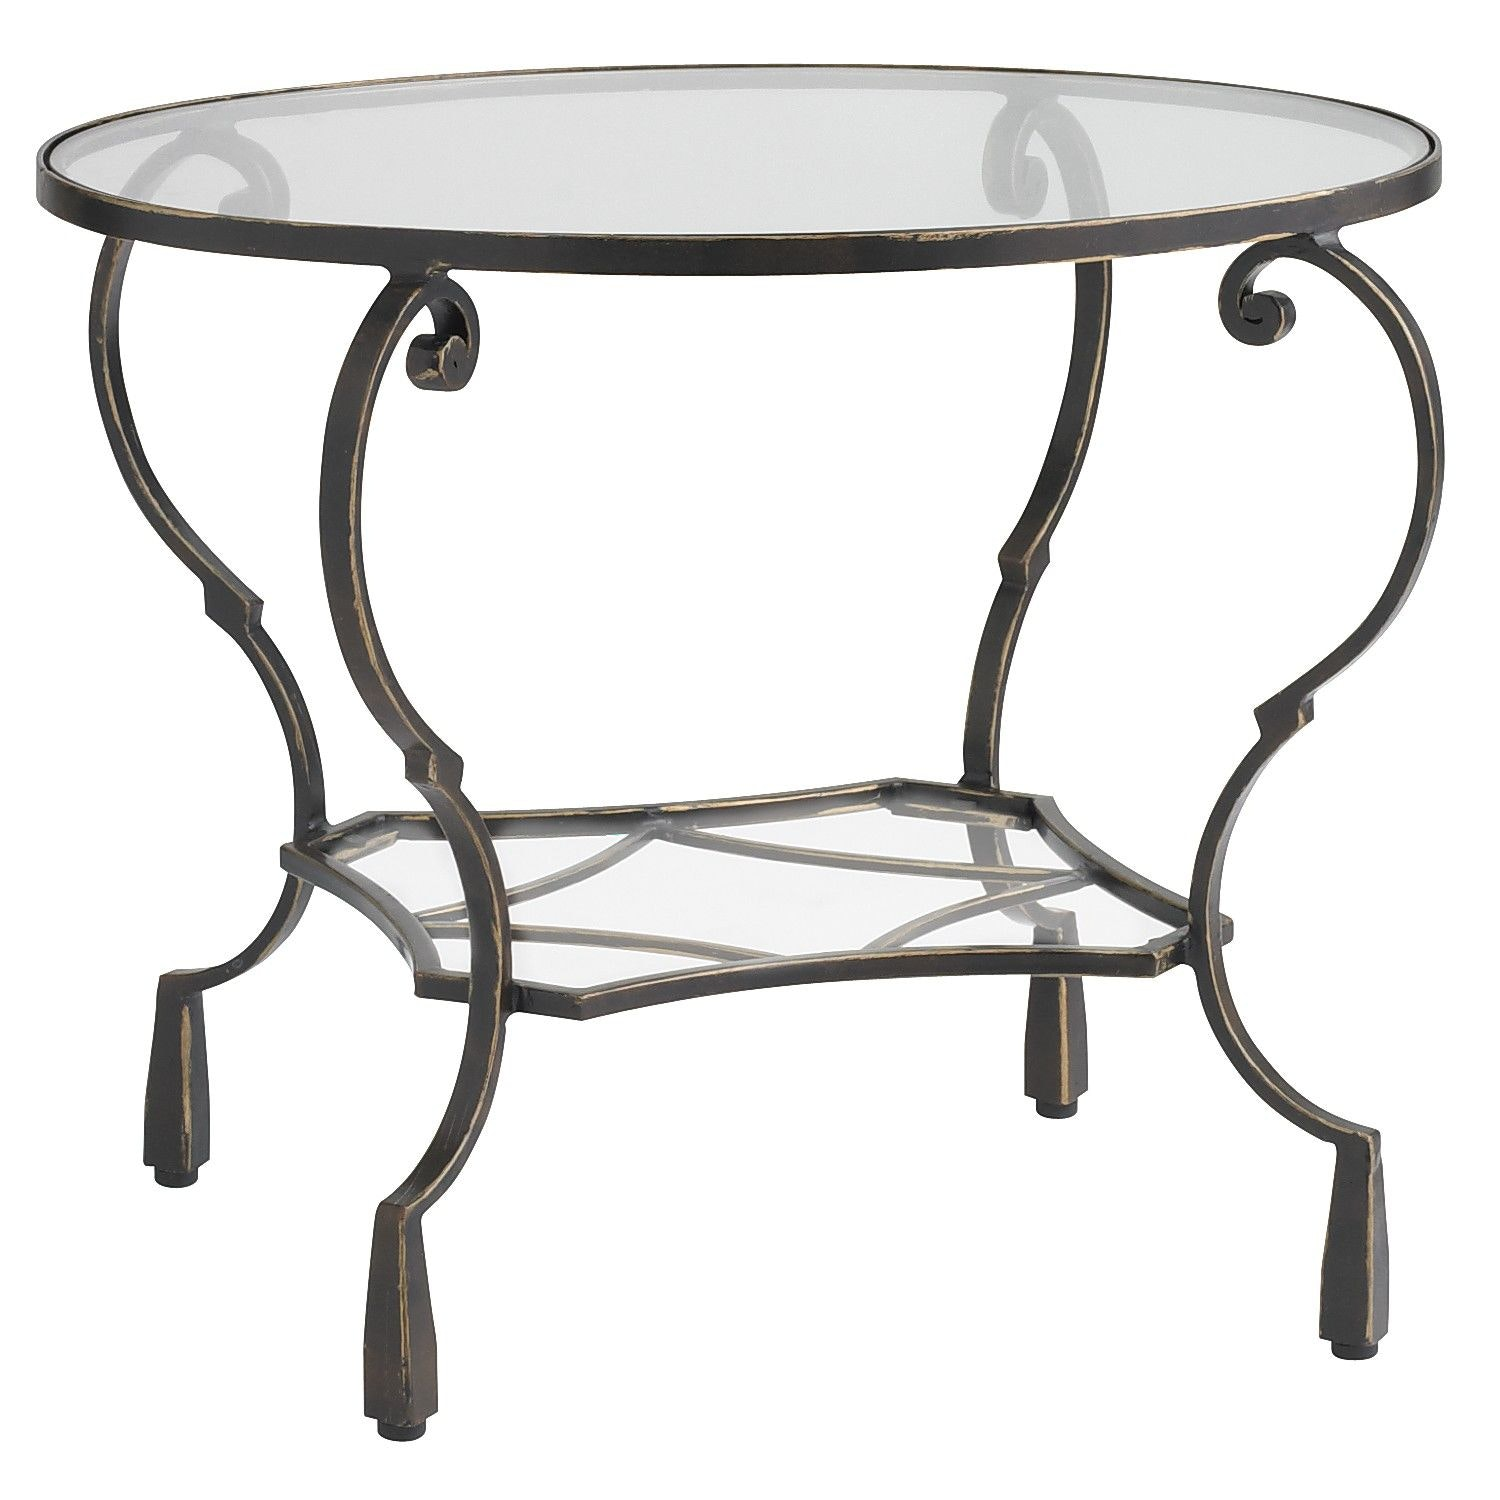 furniture pier one coffee table sofa desks decorative tables imports anywhere round trunk bar stools side mosaic accent bean shaped metal patio dresser drawer console bella green